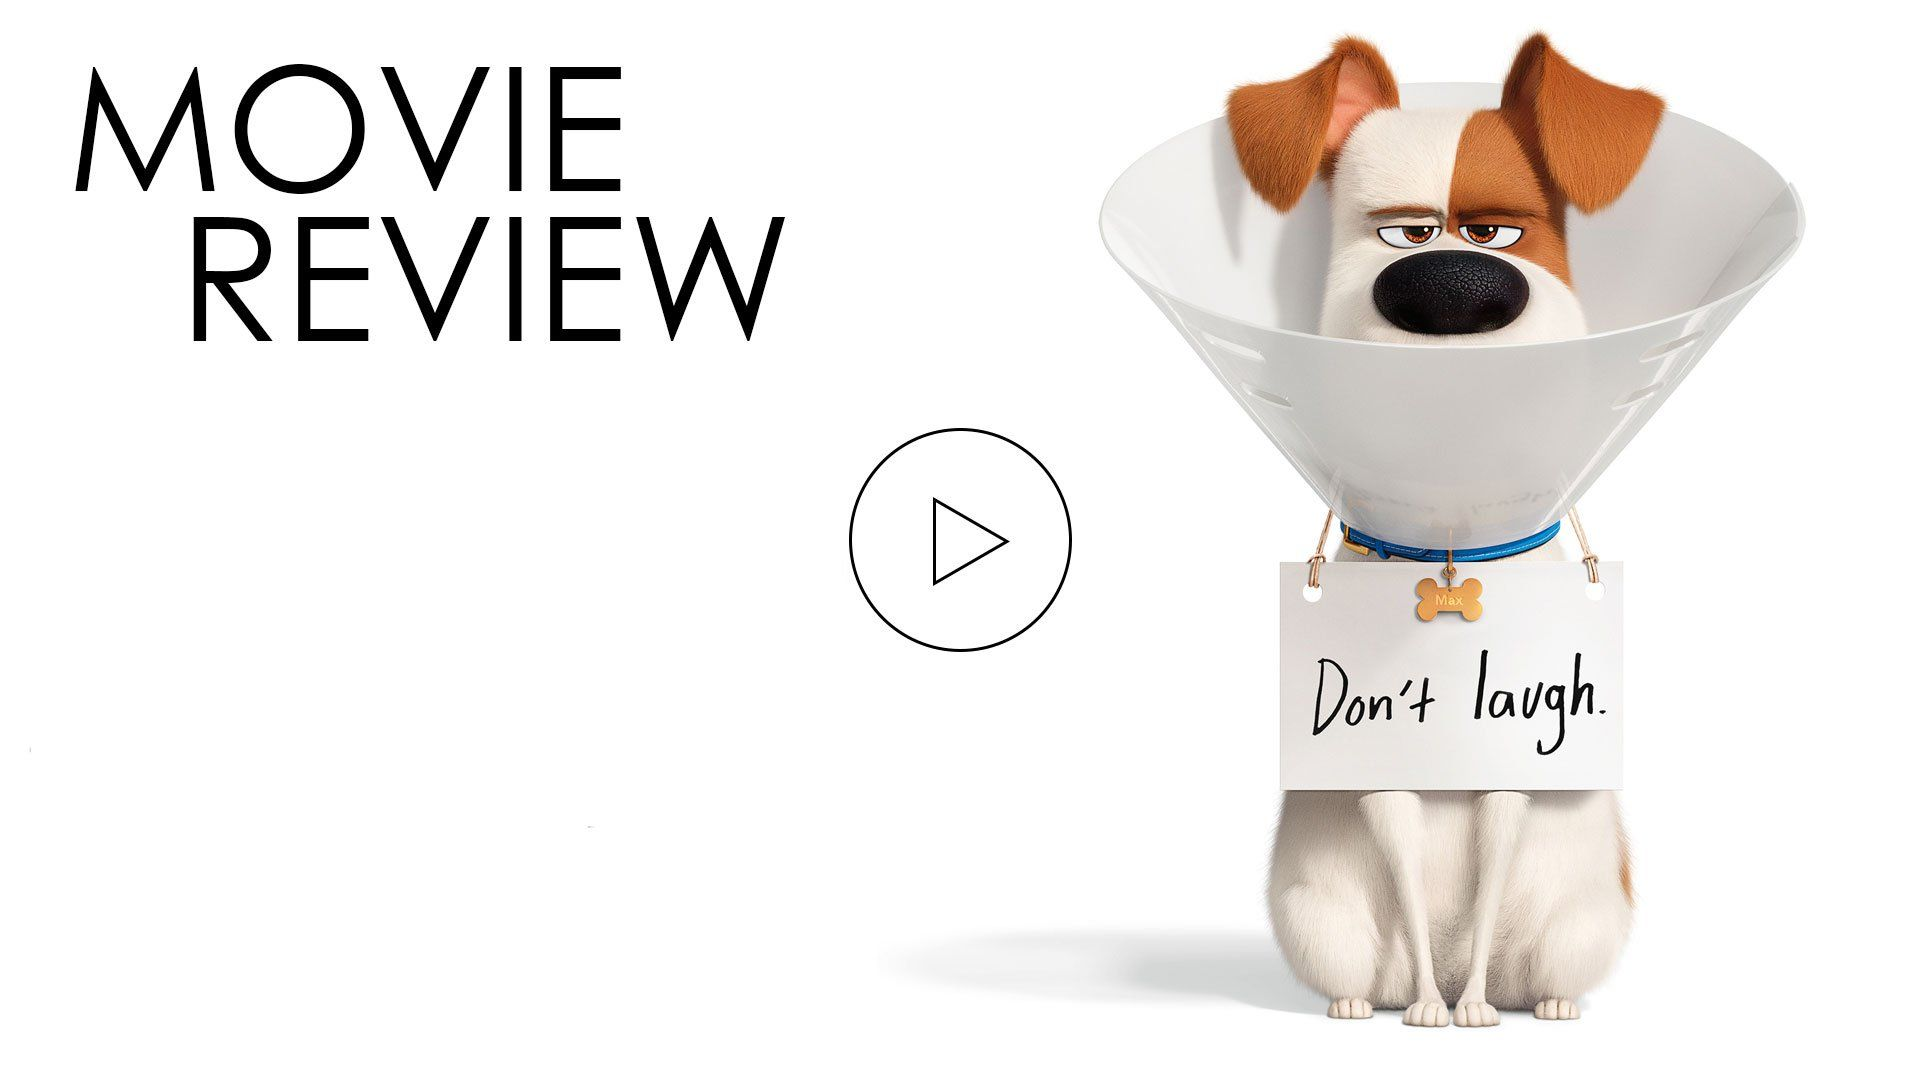 The Secret Life Of Pets 2 Video Review Movieguide Movie Reviews For Christians Https Www Movieguide Org Watch Secret Life Of Pets Secret Life Secret Live